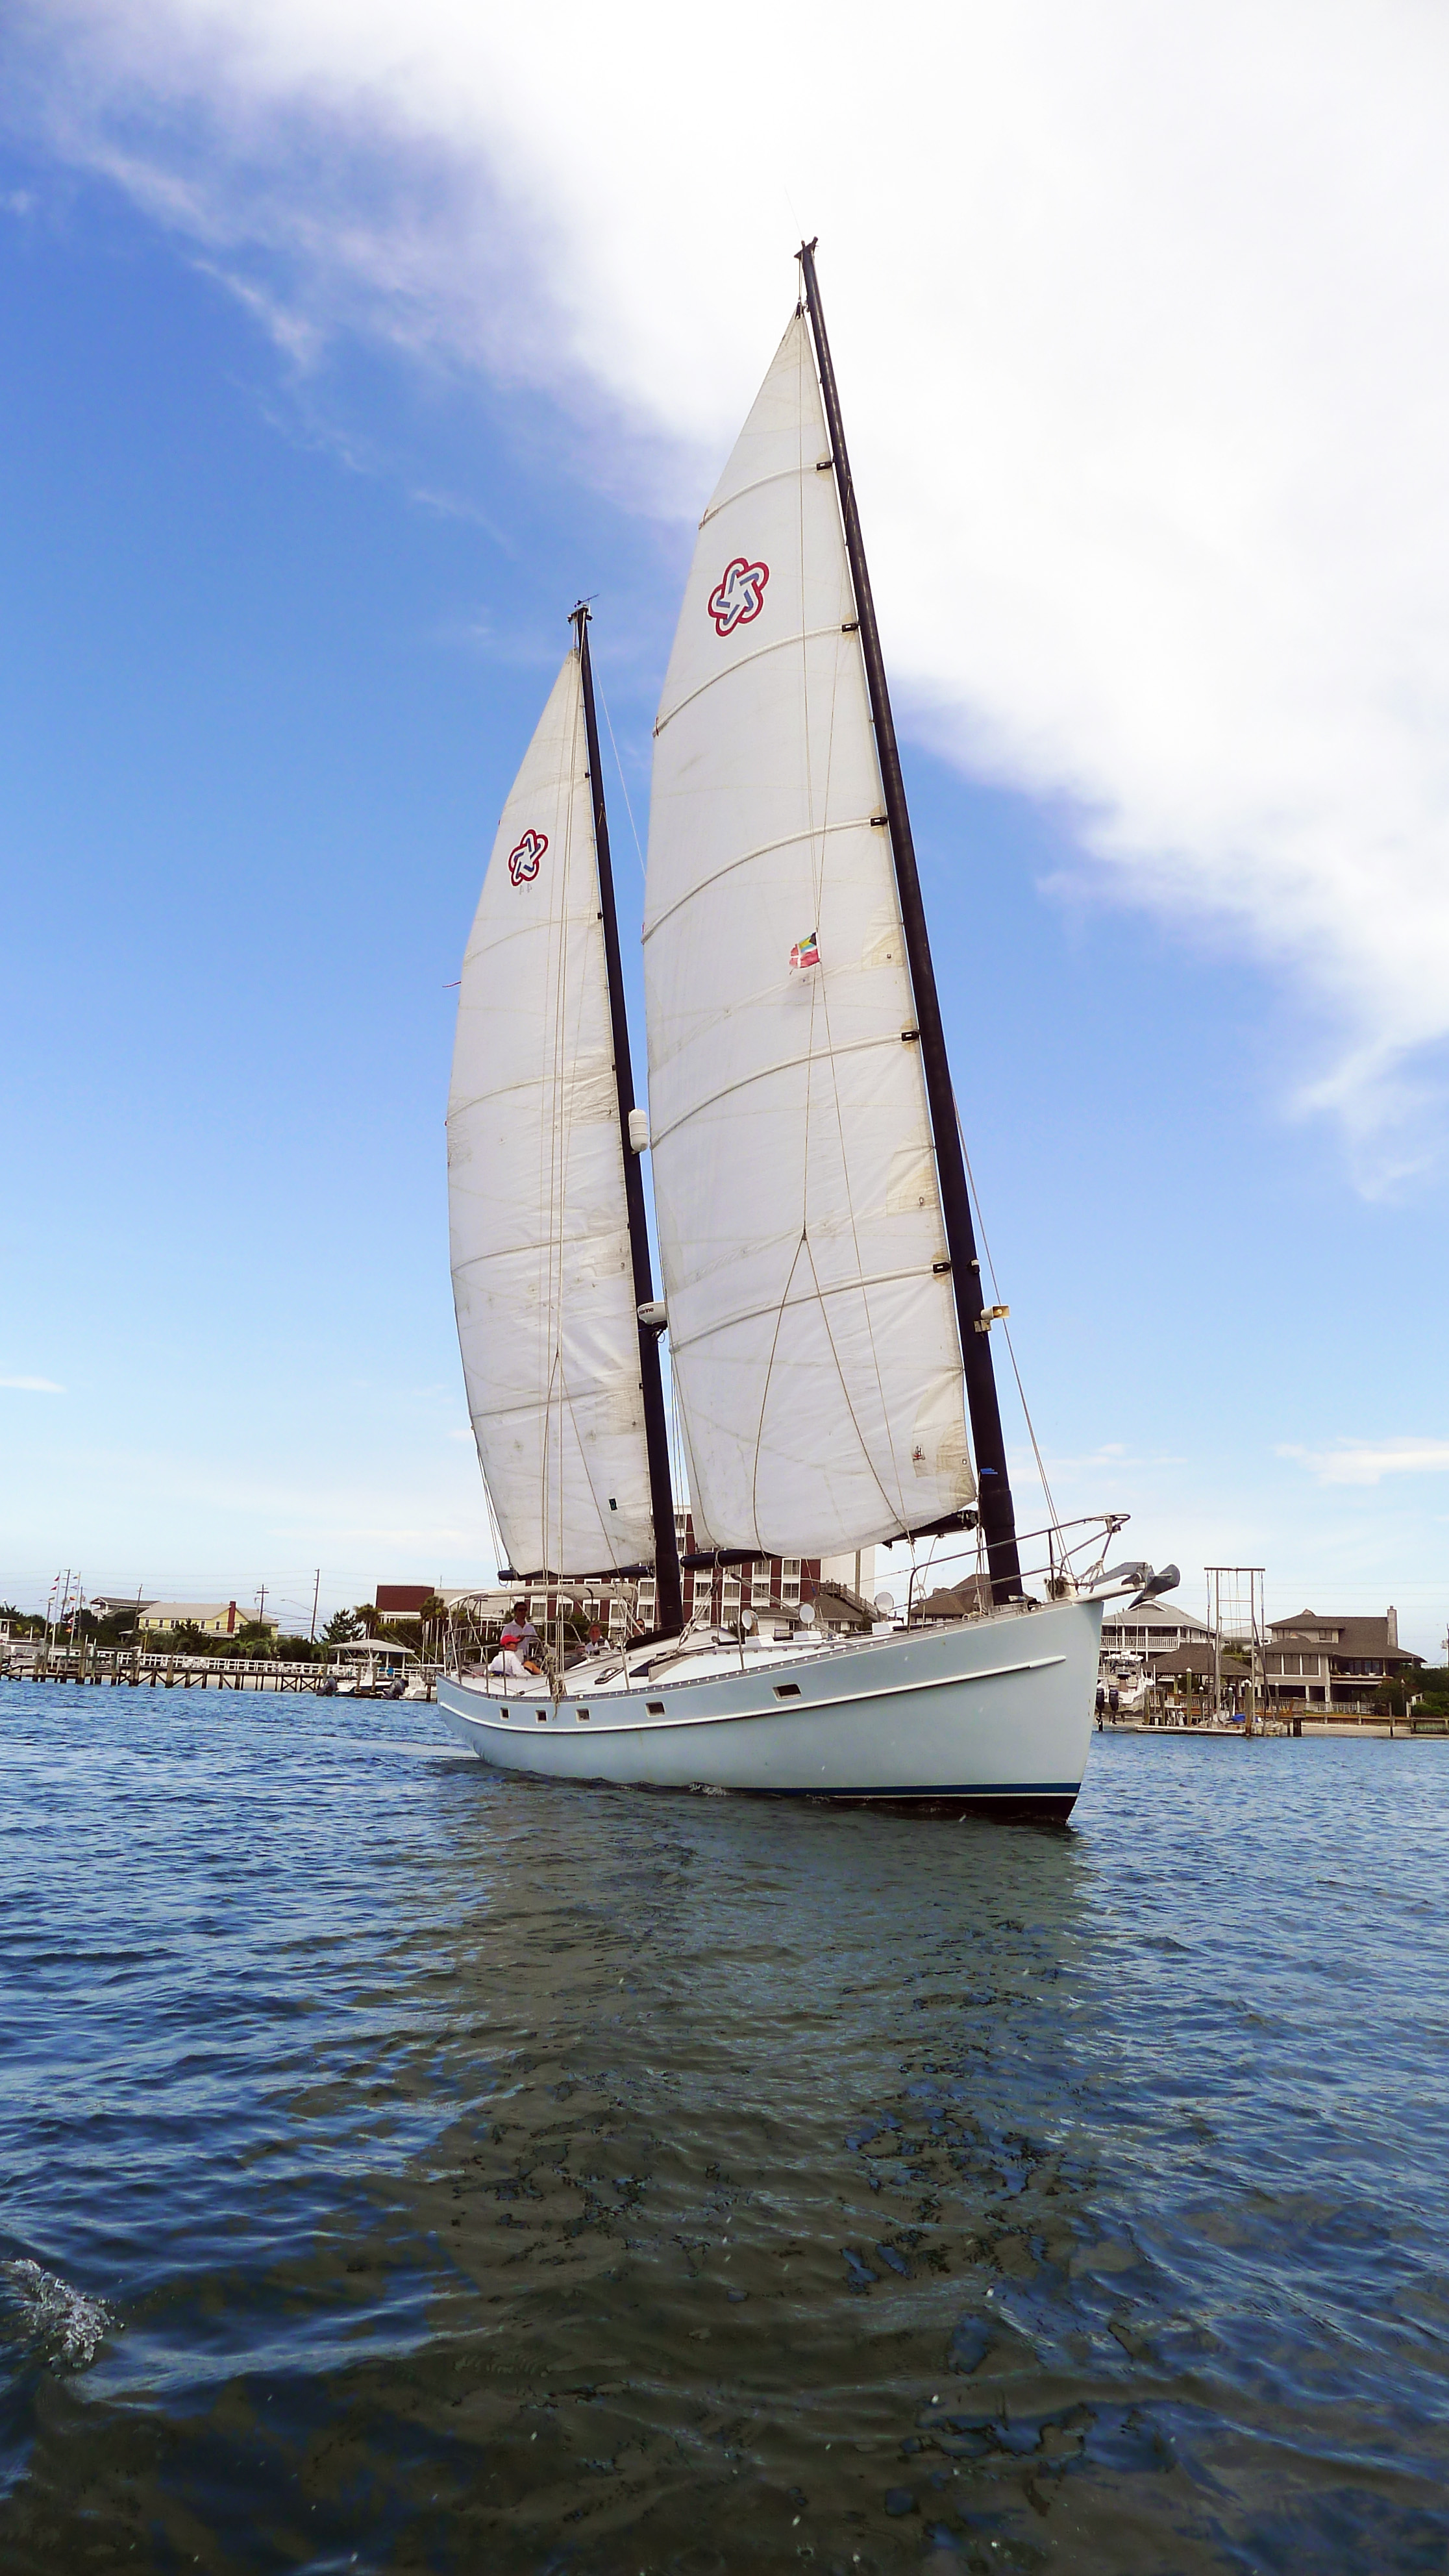 Enjoy Sailing The Beautiful Waters Of Wrightsville Beach